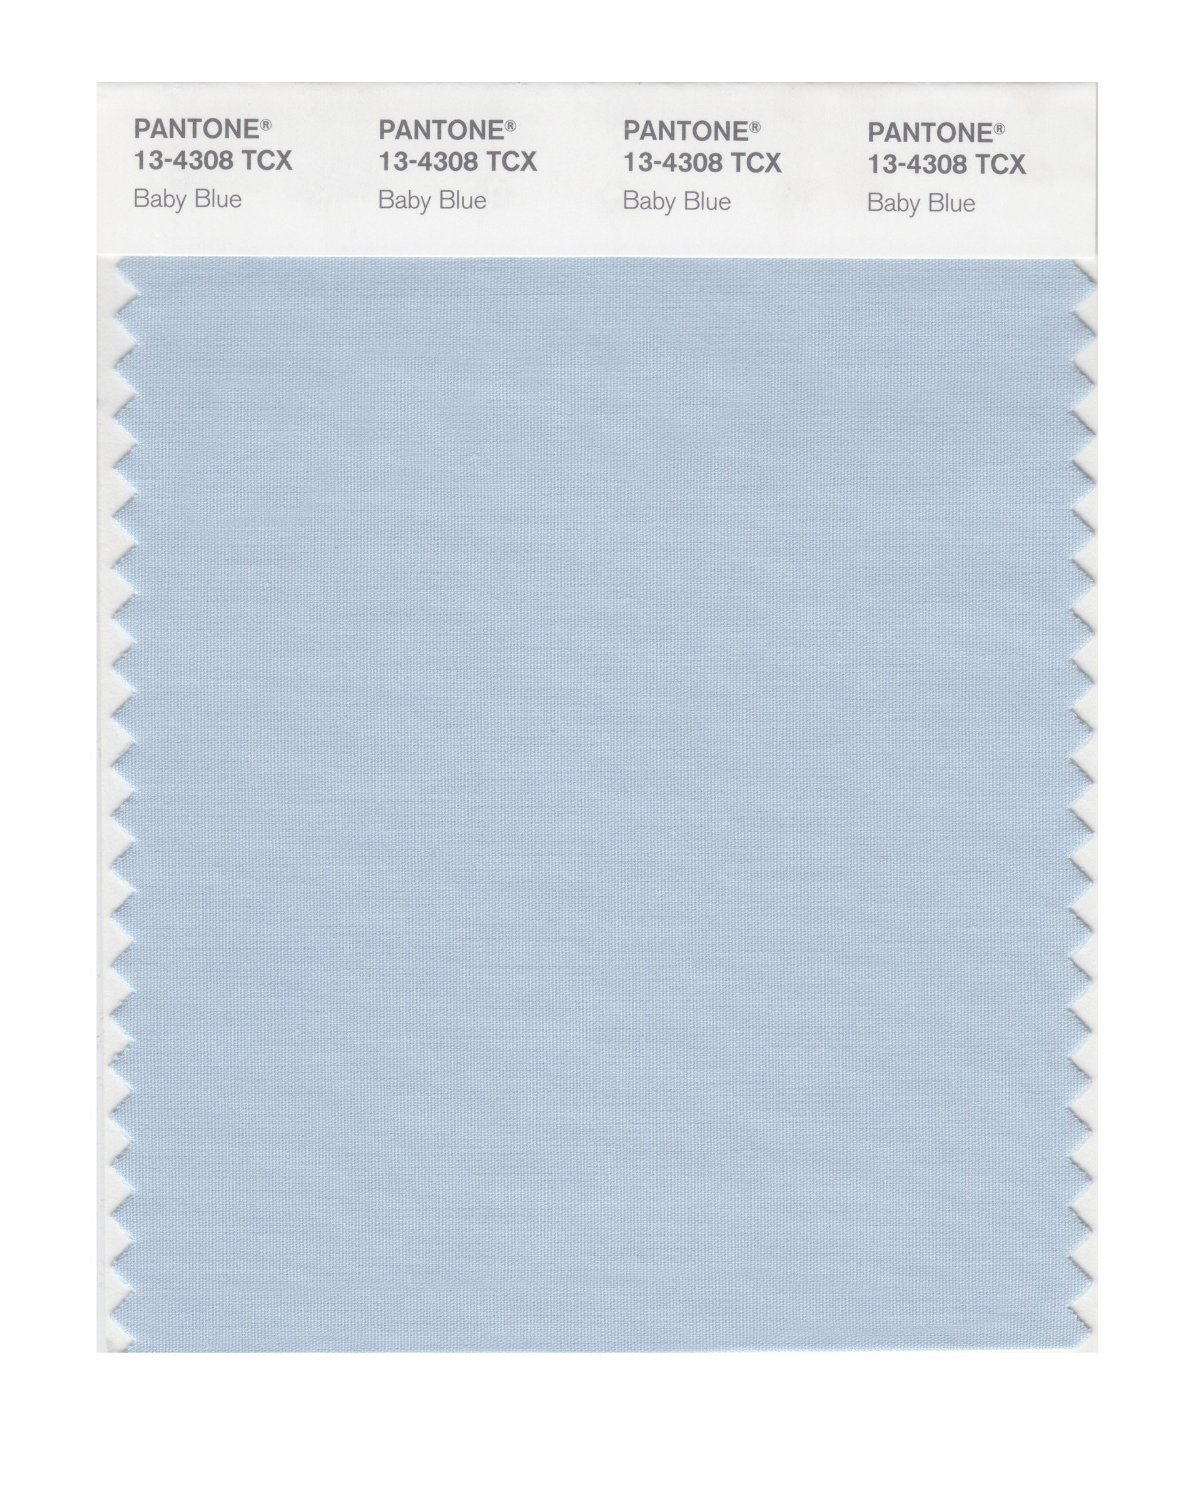 Pantone Smart Swatch 13-4308 Baby Blue